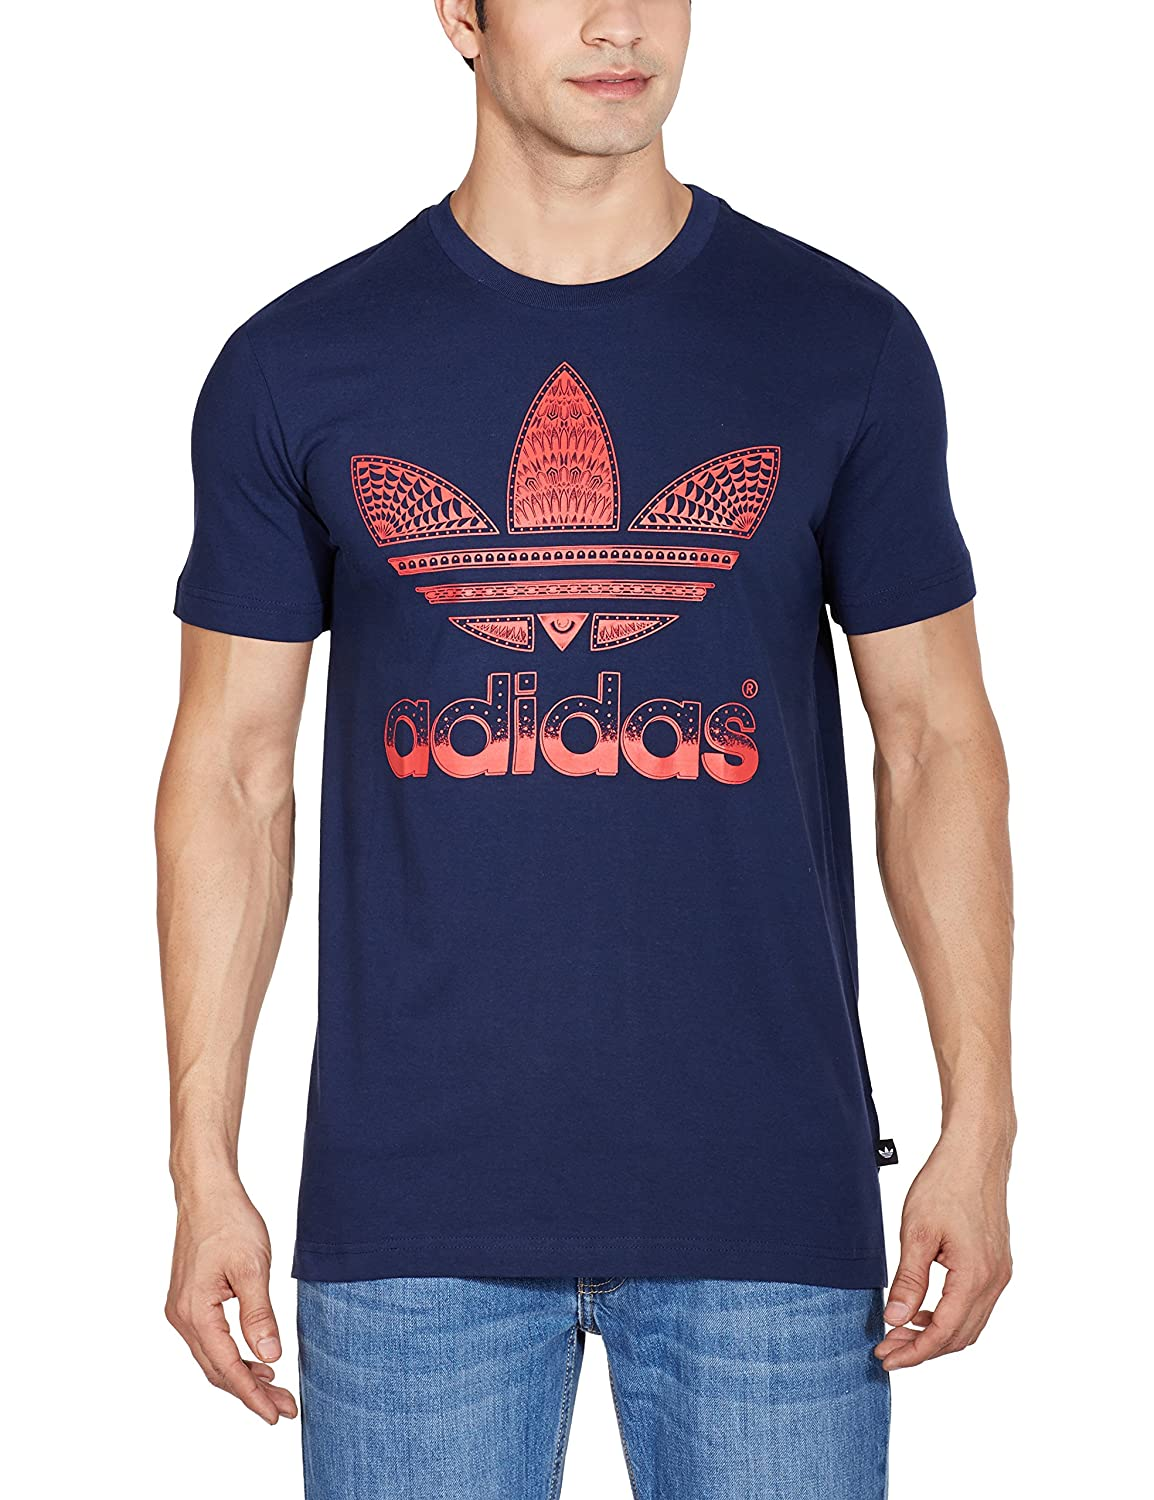 adidas - Shirts - Trefoil Fill-In Graphic Tee - Blue - XS